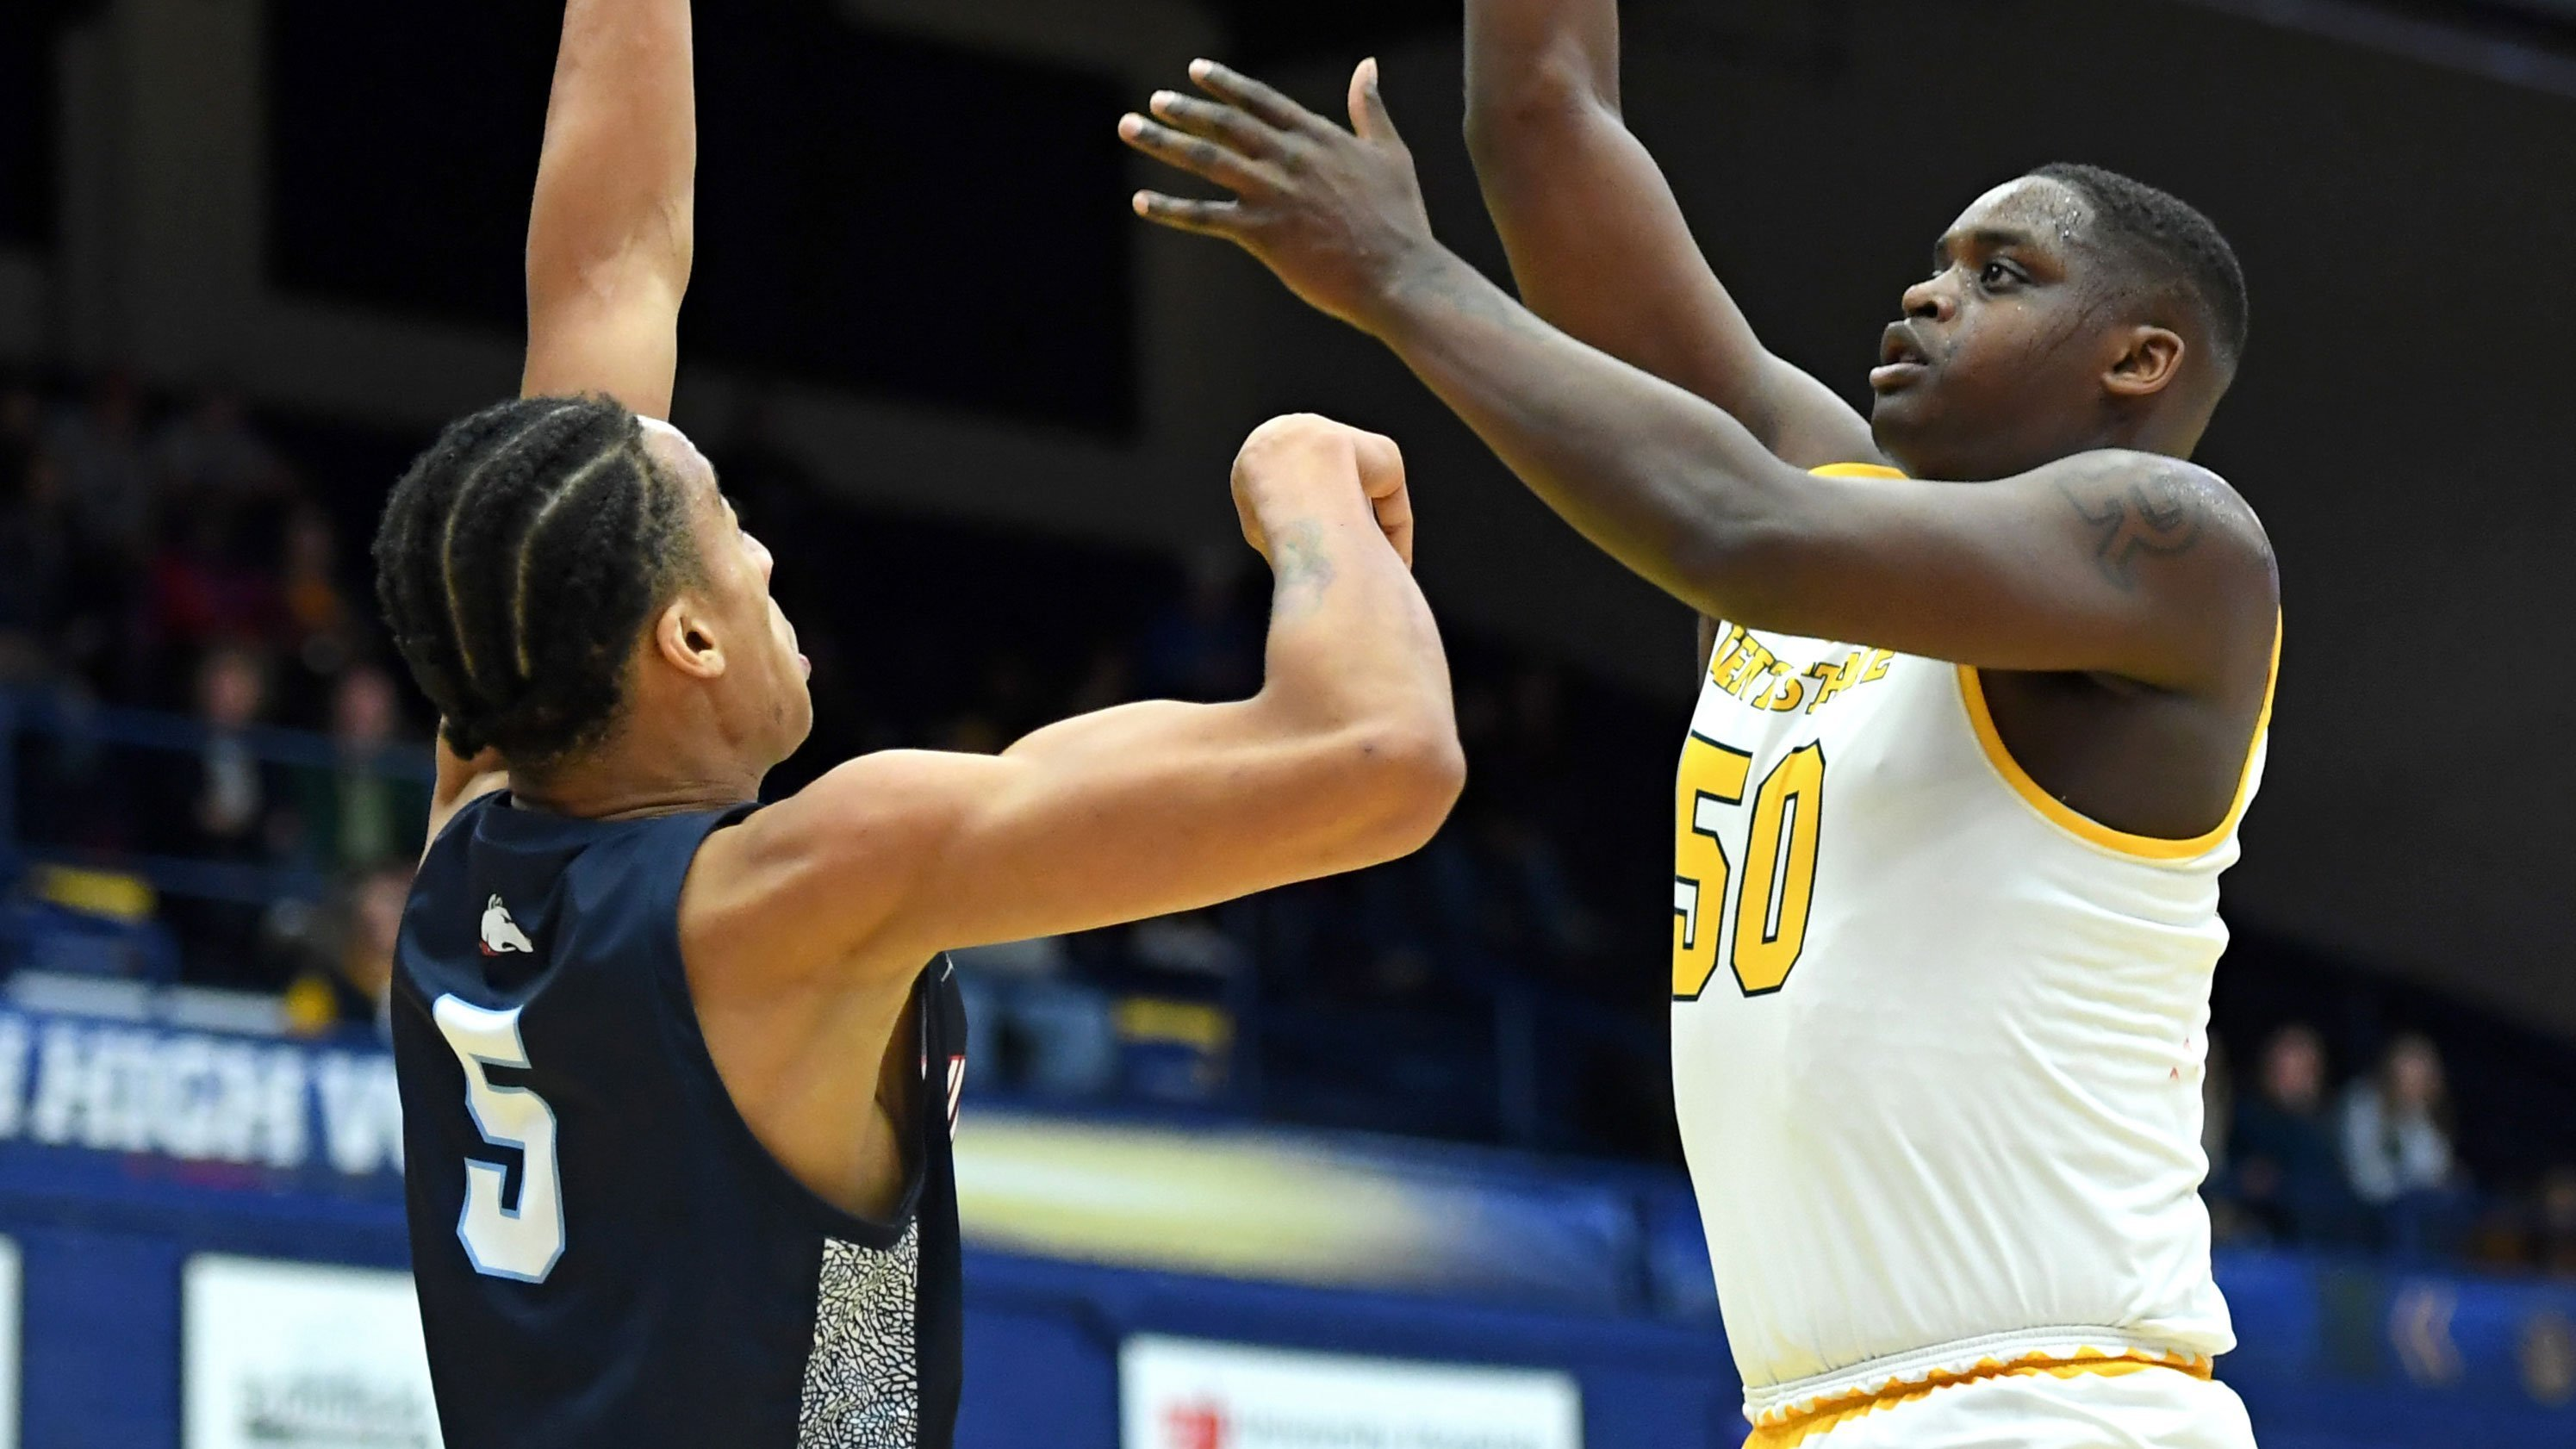 Kalin Bennett, Division I basketball recruit diagnosed with autism, plays for Kent State in opener